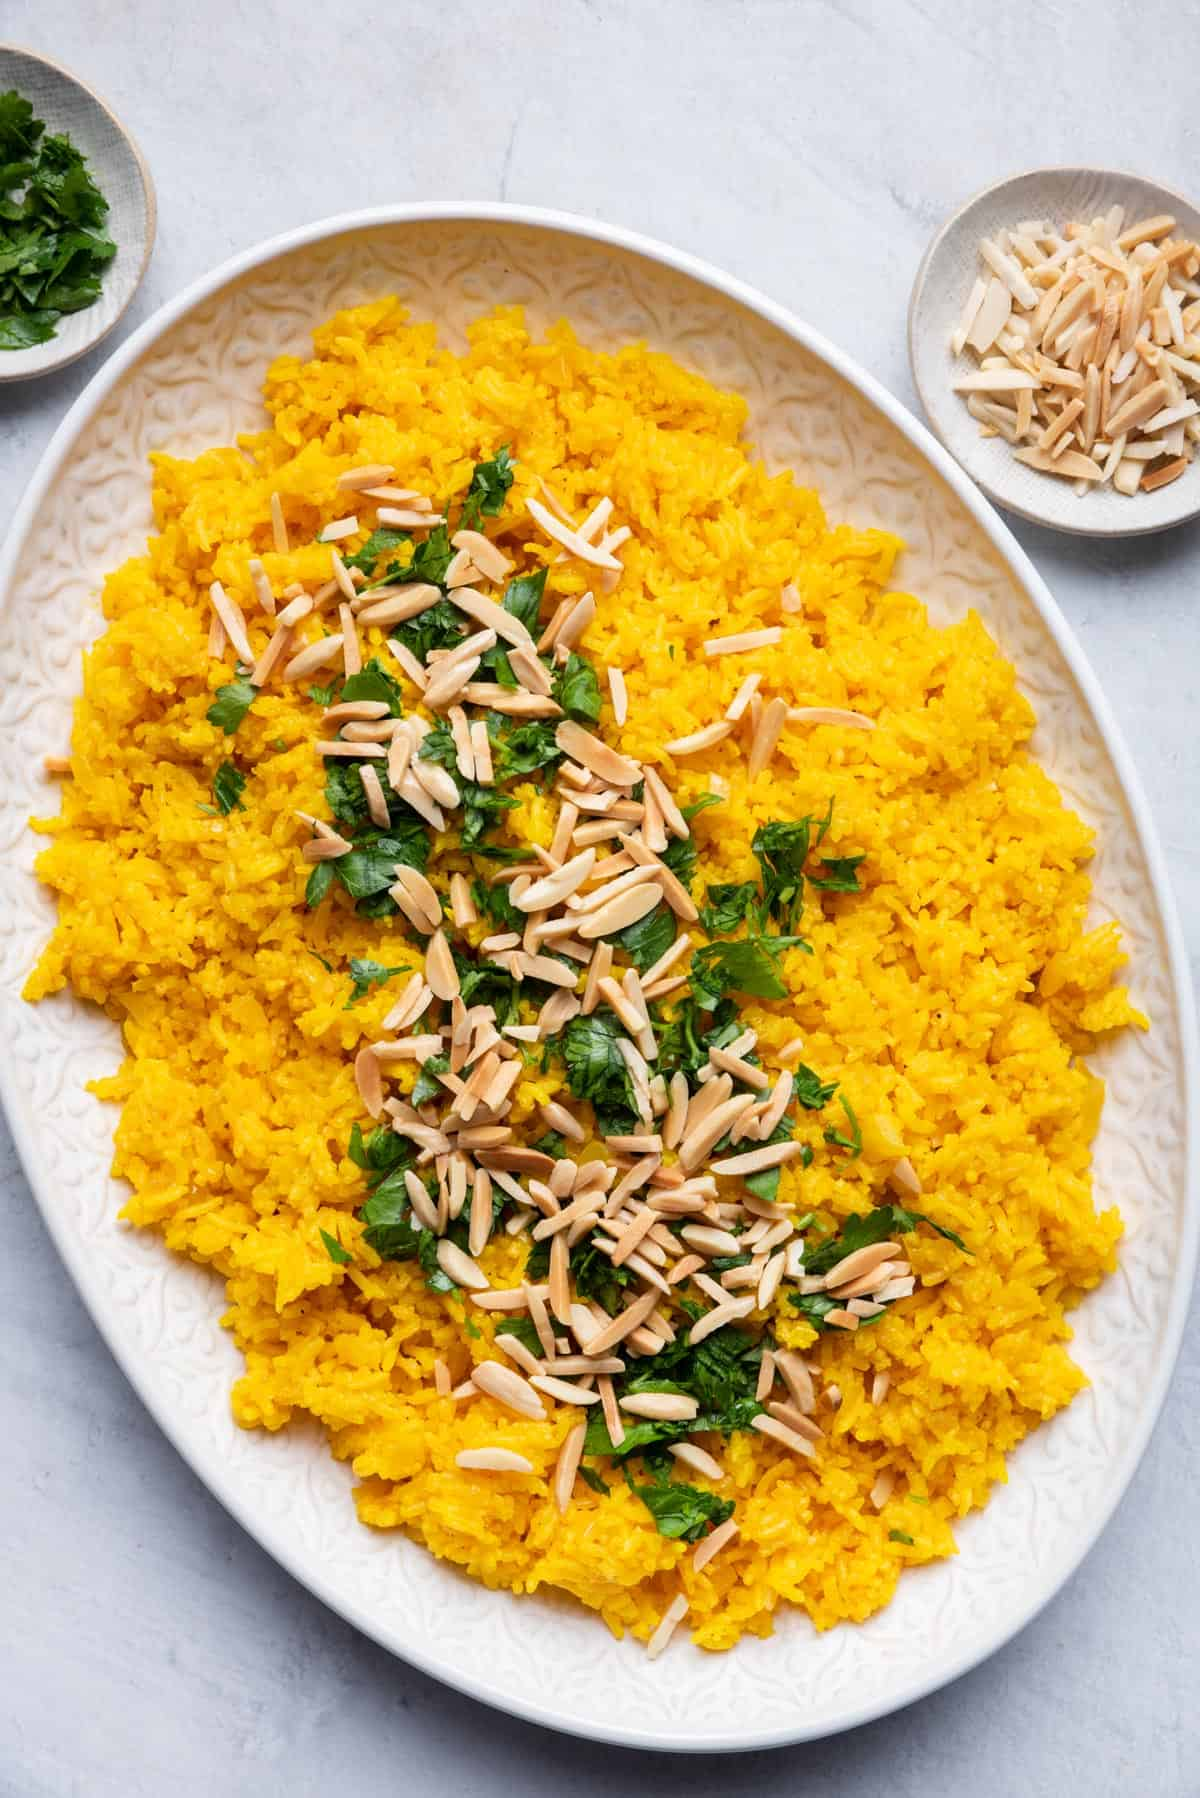 Turmeric rice served in a large platter topped with parsley and almonds